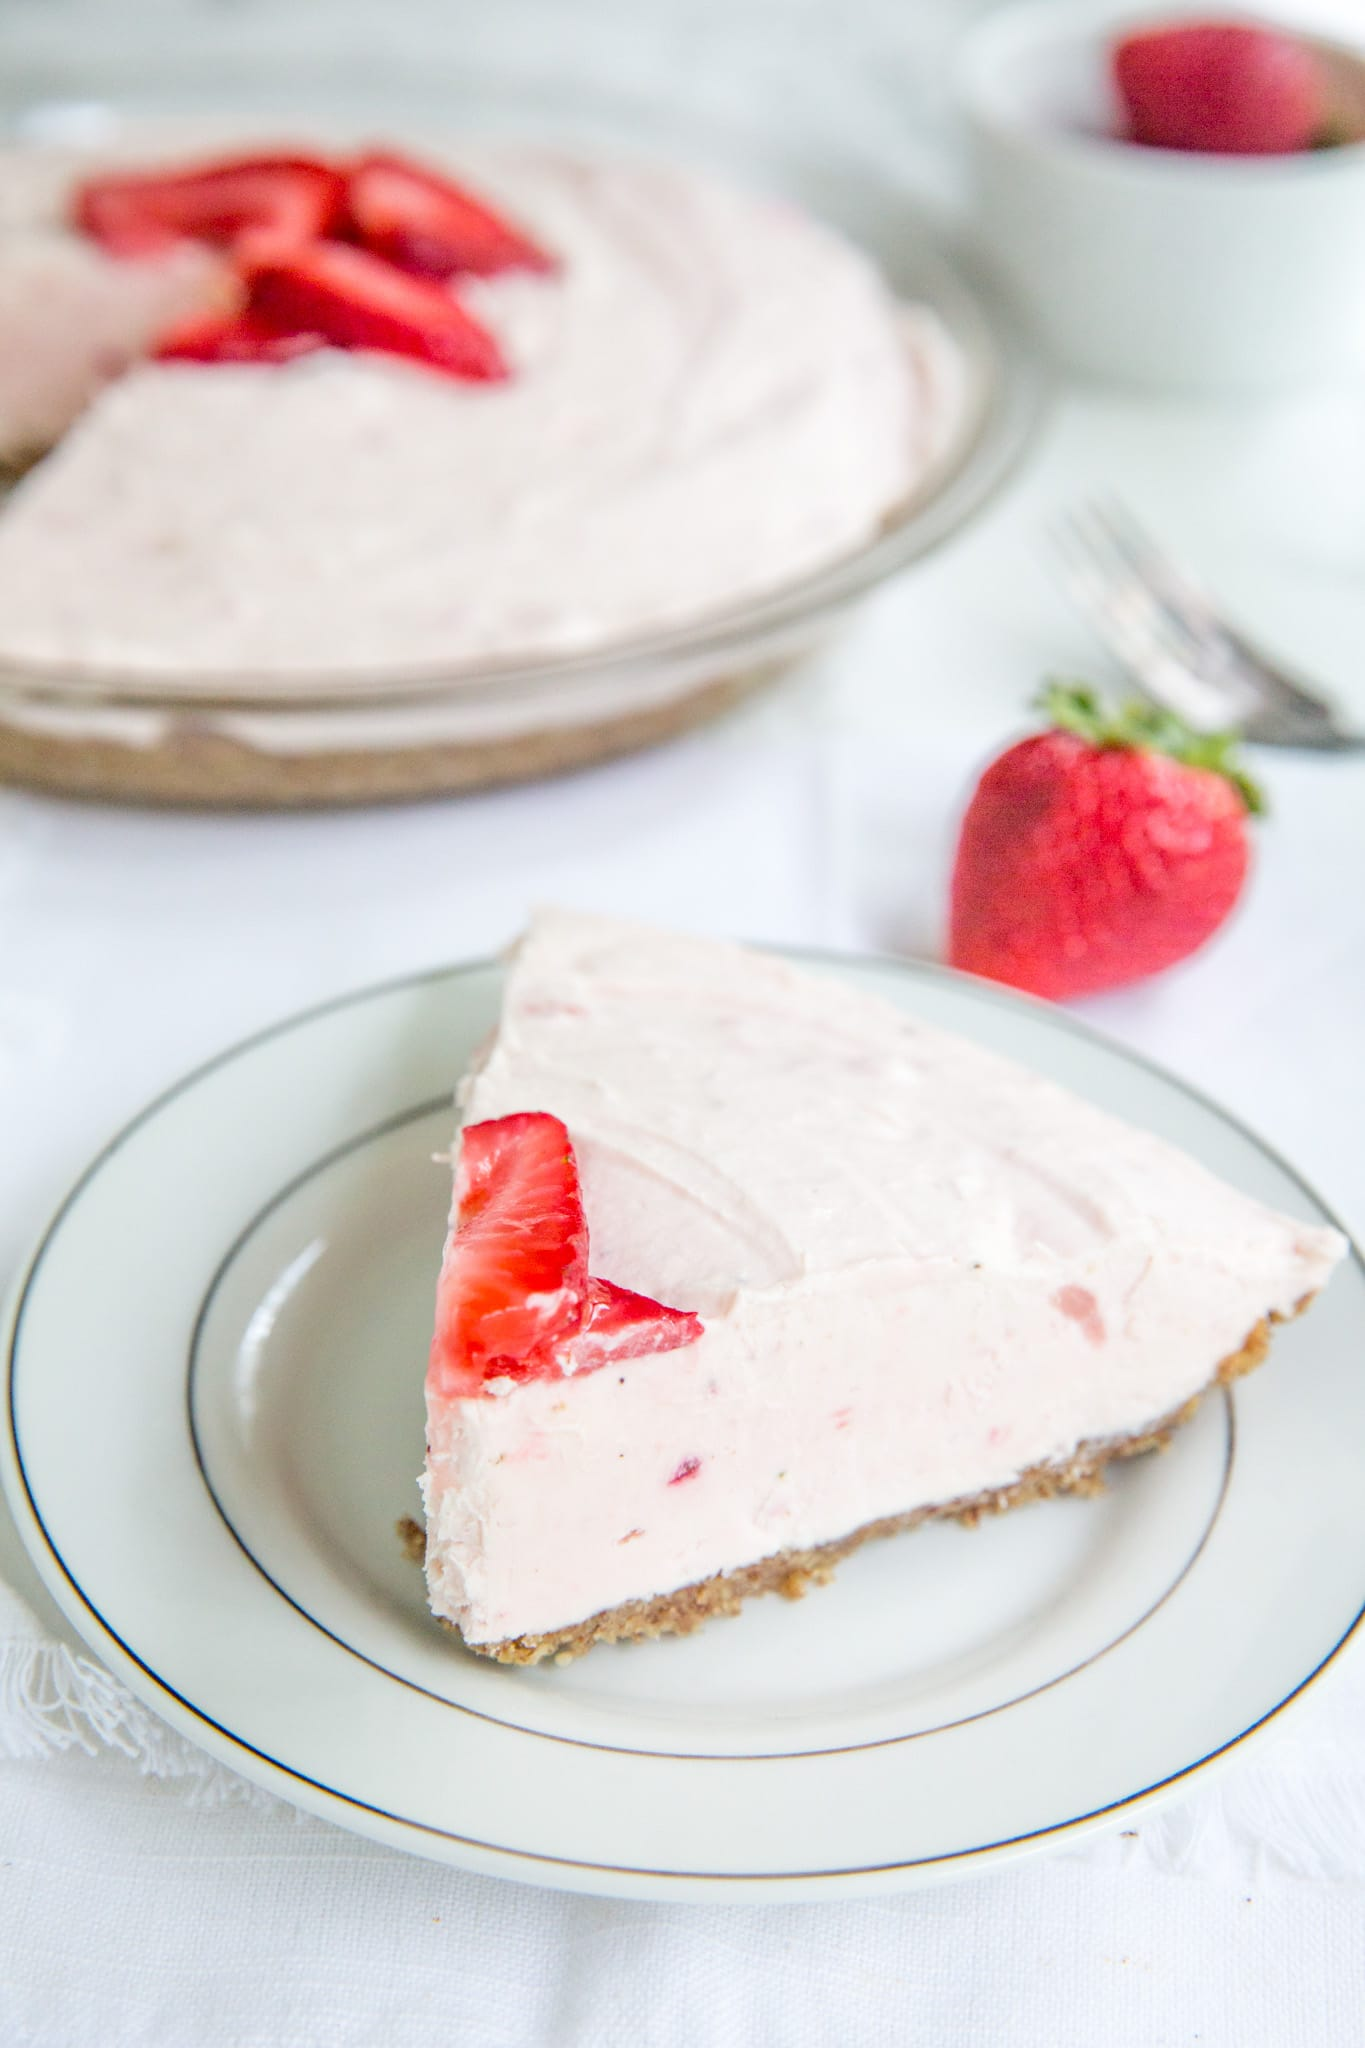 sugar free low carb strawberry pie plated on a white plate